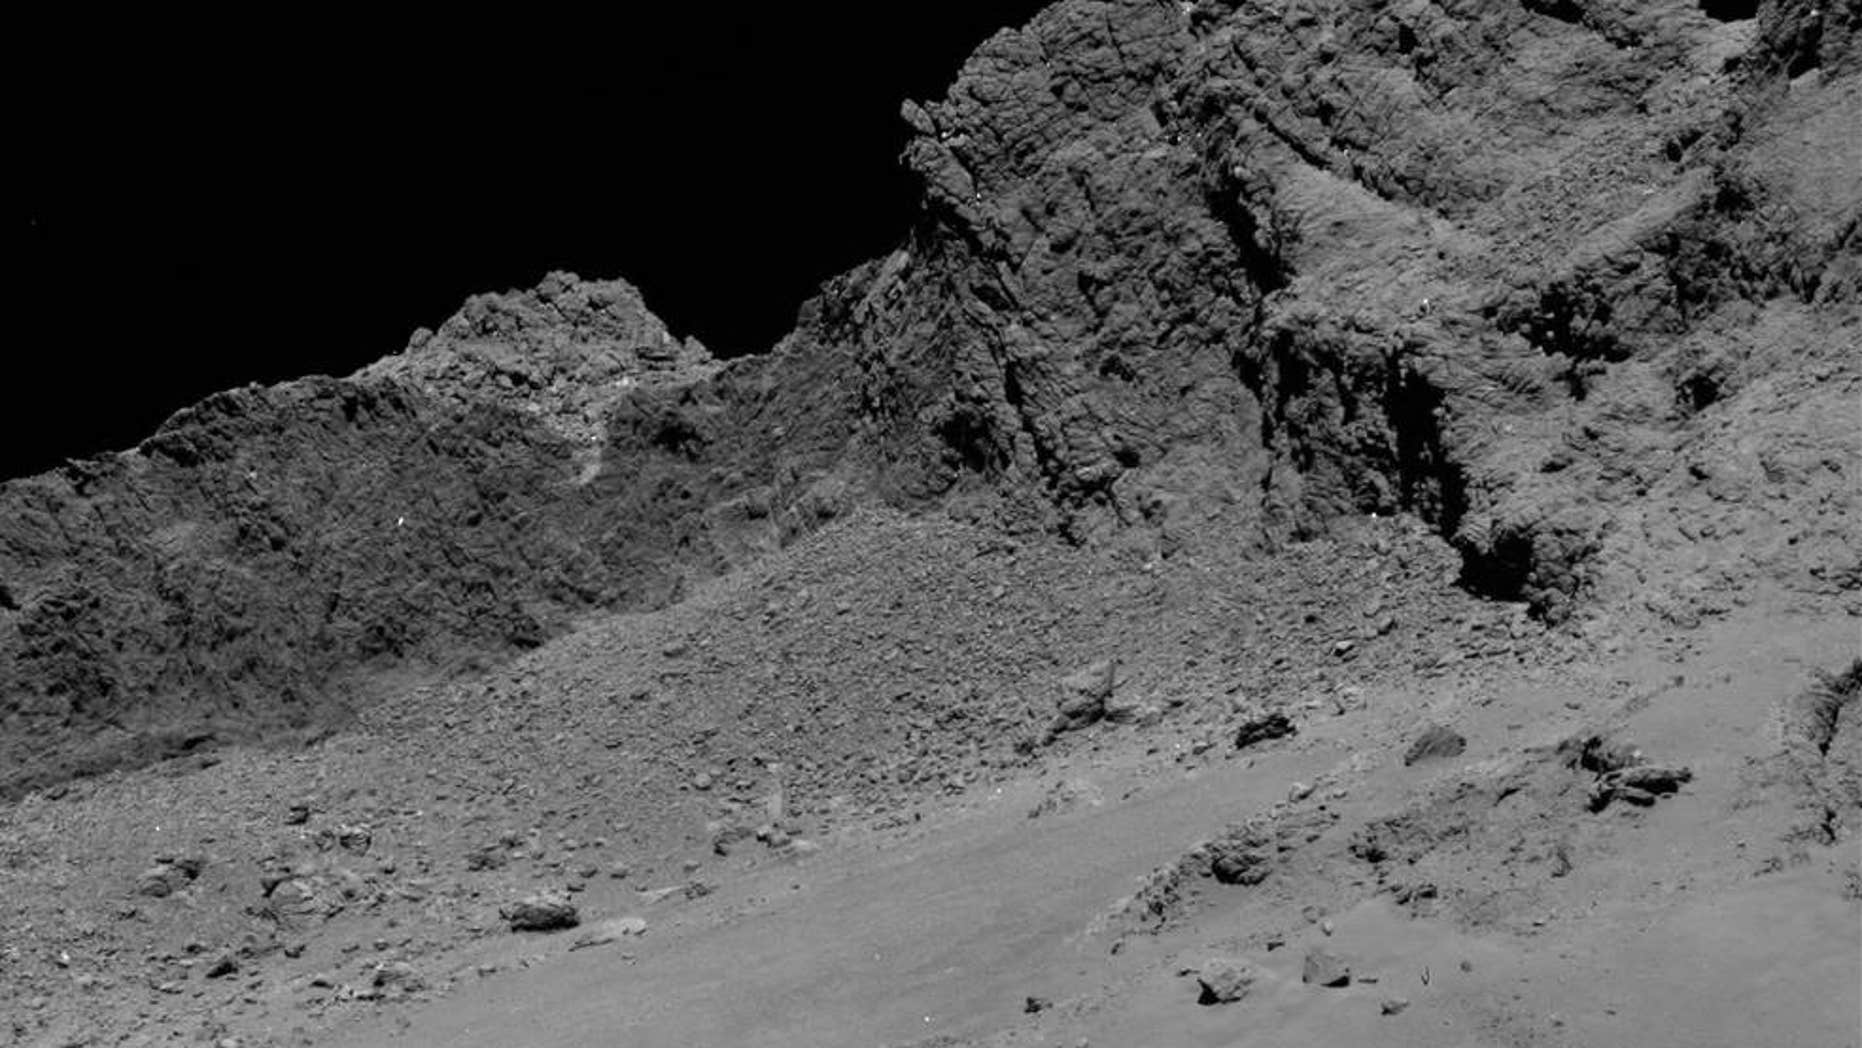 The OSIRIS narrow-angle camera aboard the Space Agency's Rosetta spacecraft captured this image of comet 67P/Churyumov-Gerasimenko on September 30, 2016, from an altitude of about 10 miles above the surface during the spacecraft's controlled descent.